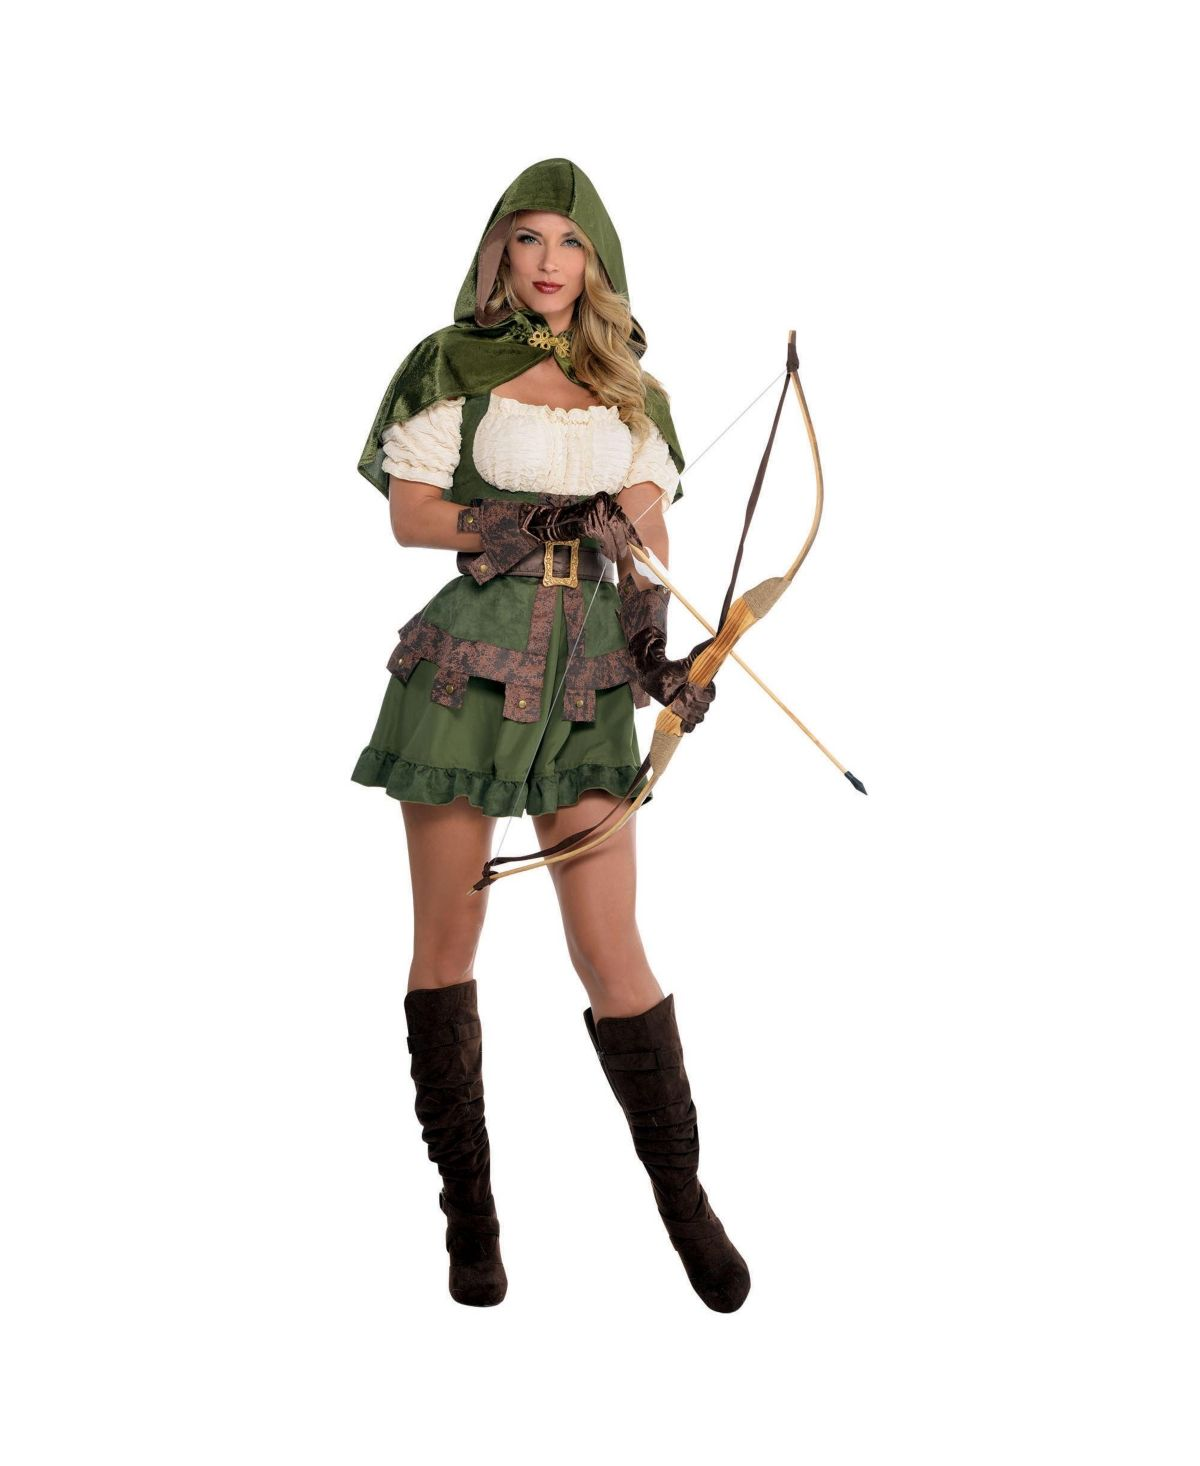 Robin Hood Hat Brown Medieval Fancy Dress Halloween Adult Costume Accessory